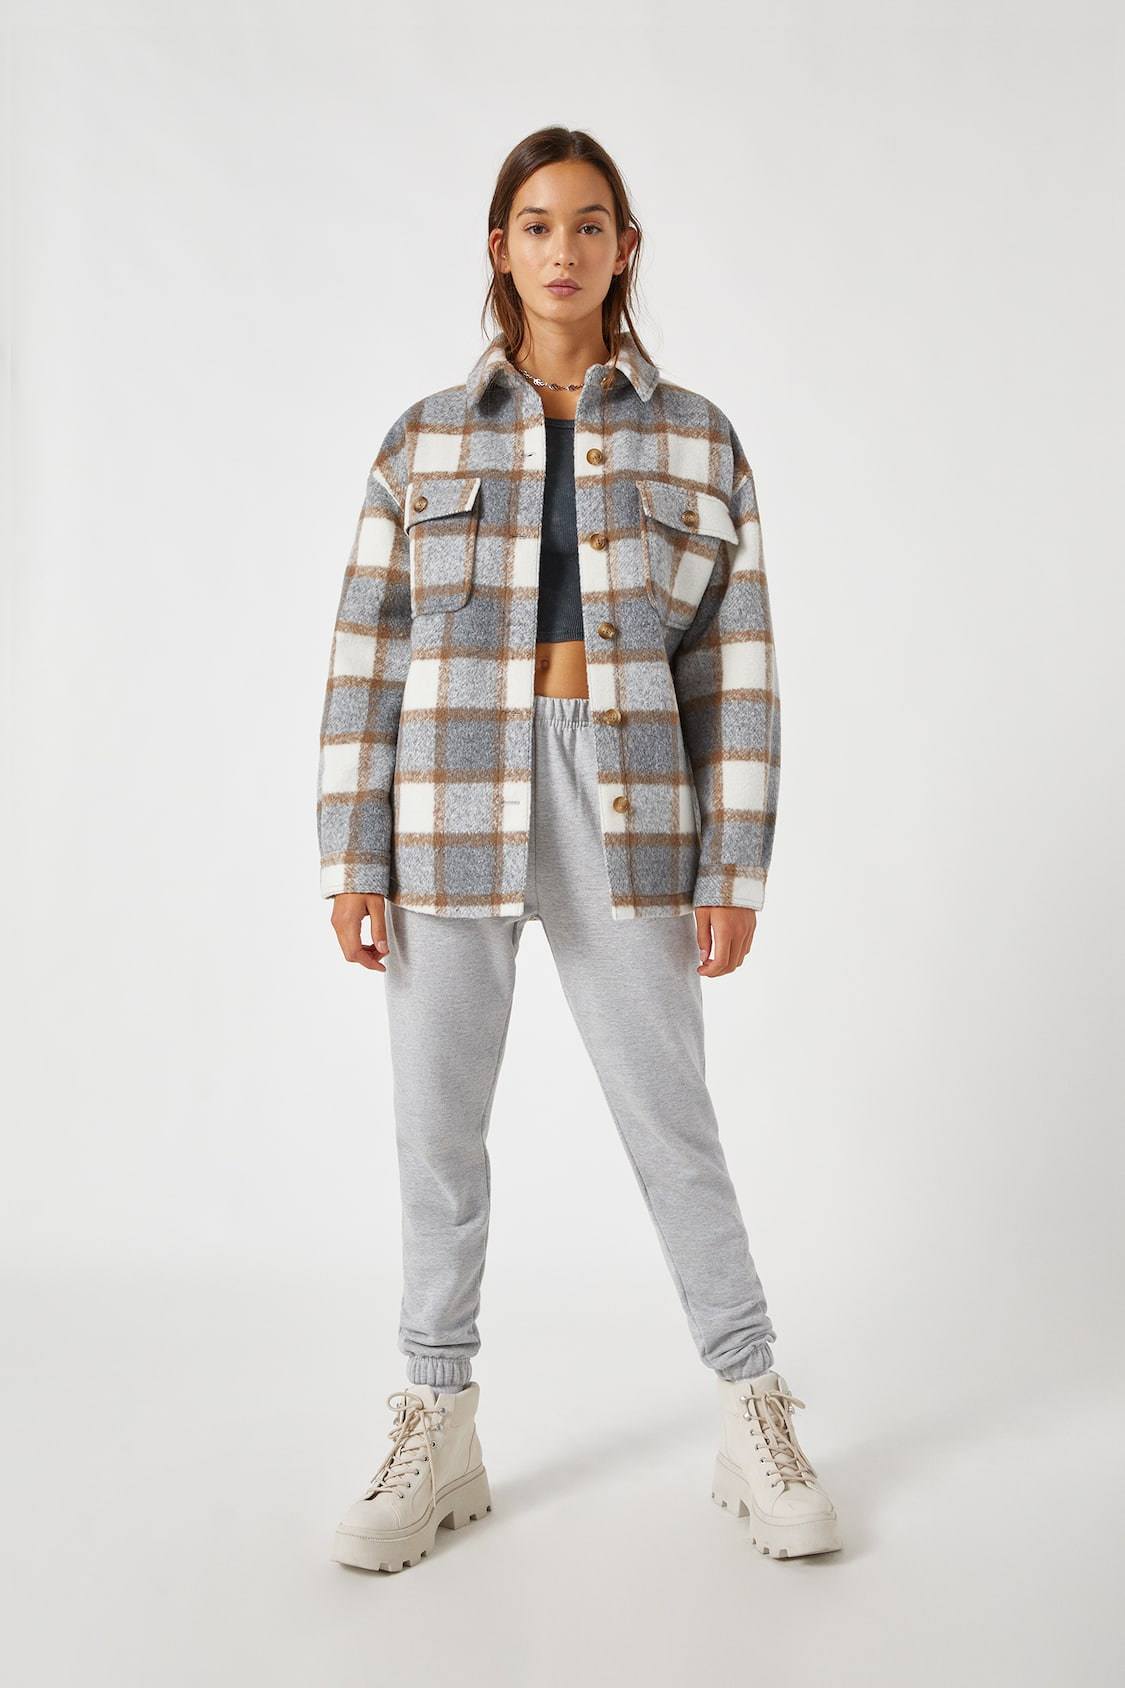 giacca-camicia pull&bear